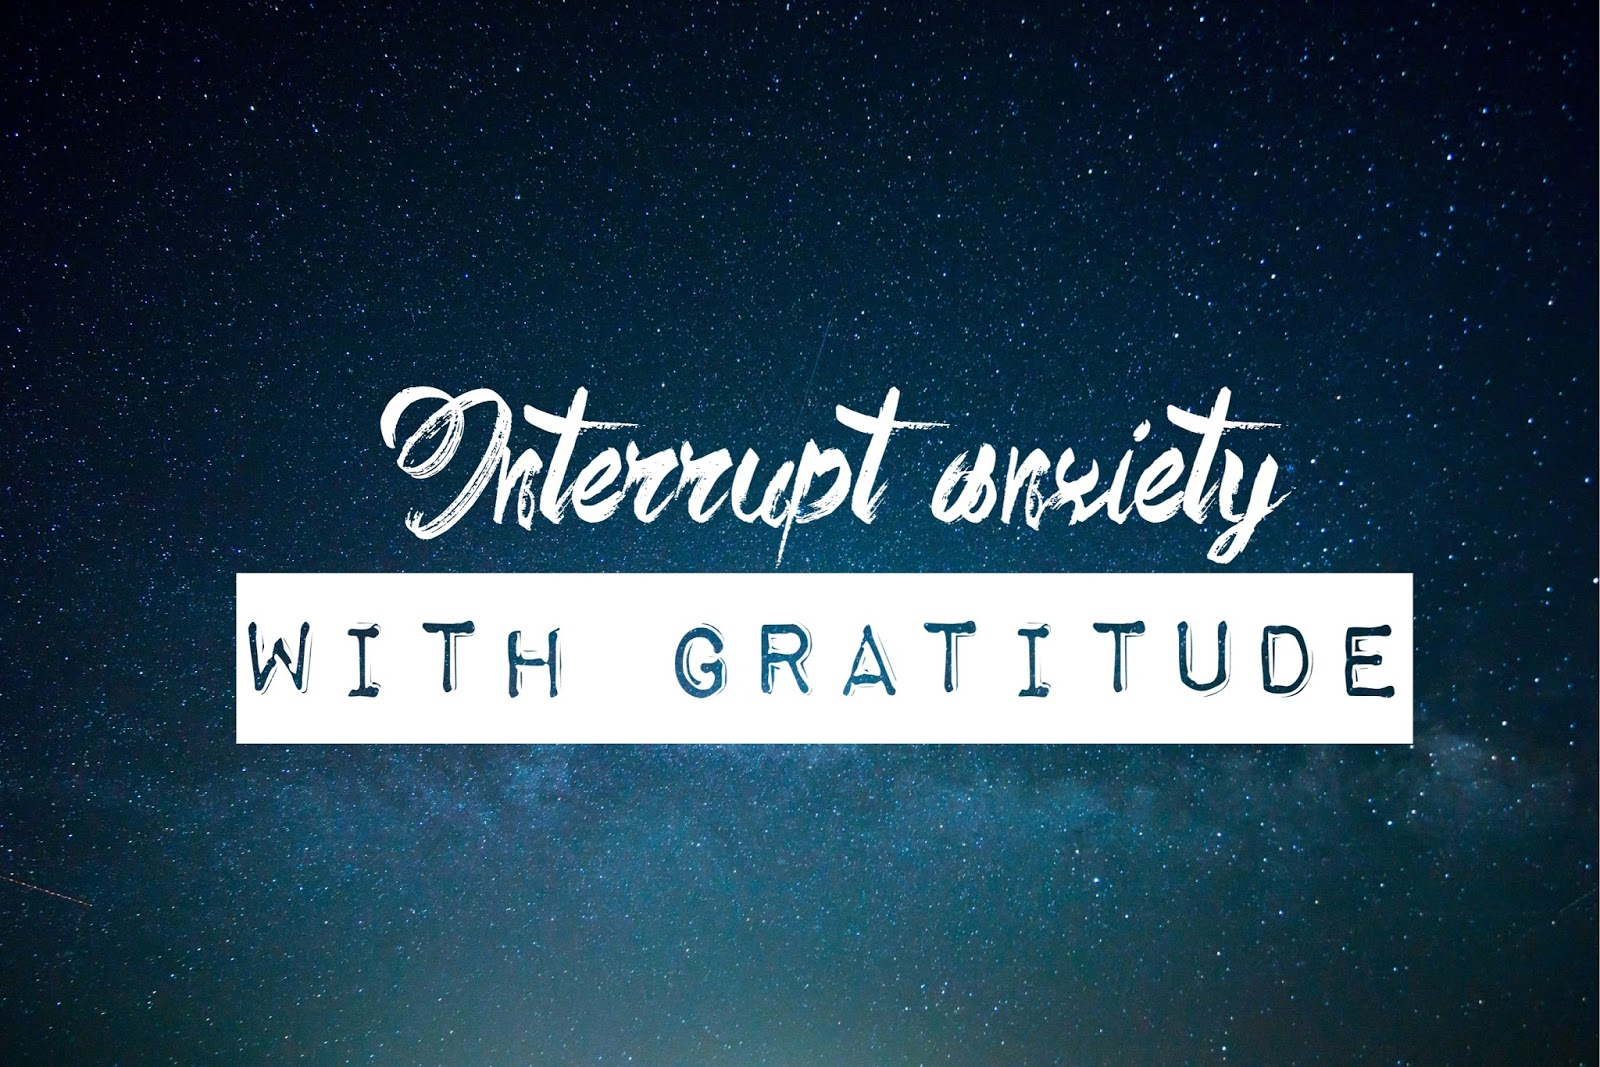 Interrupt anxiety with gratitude image